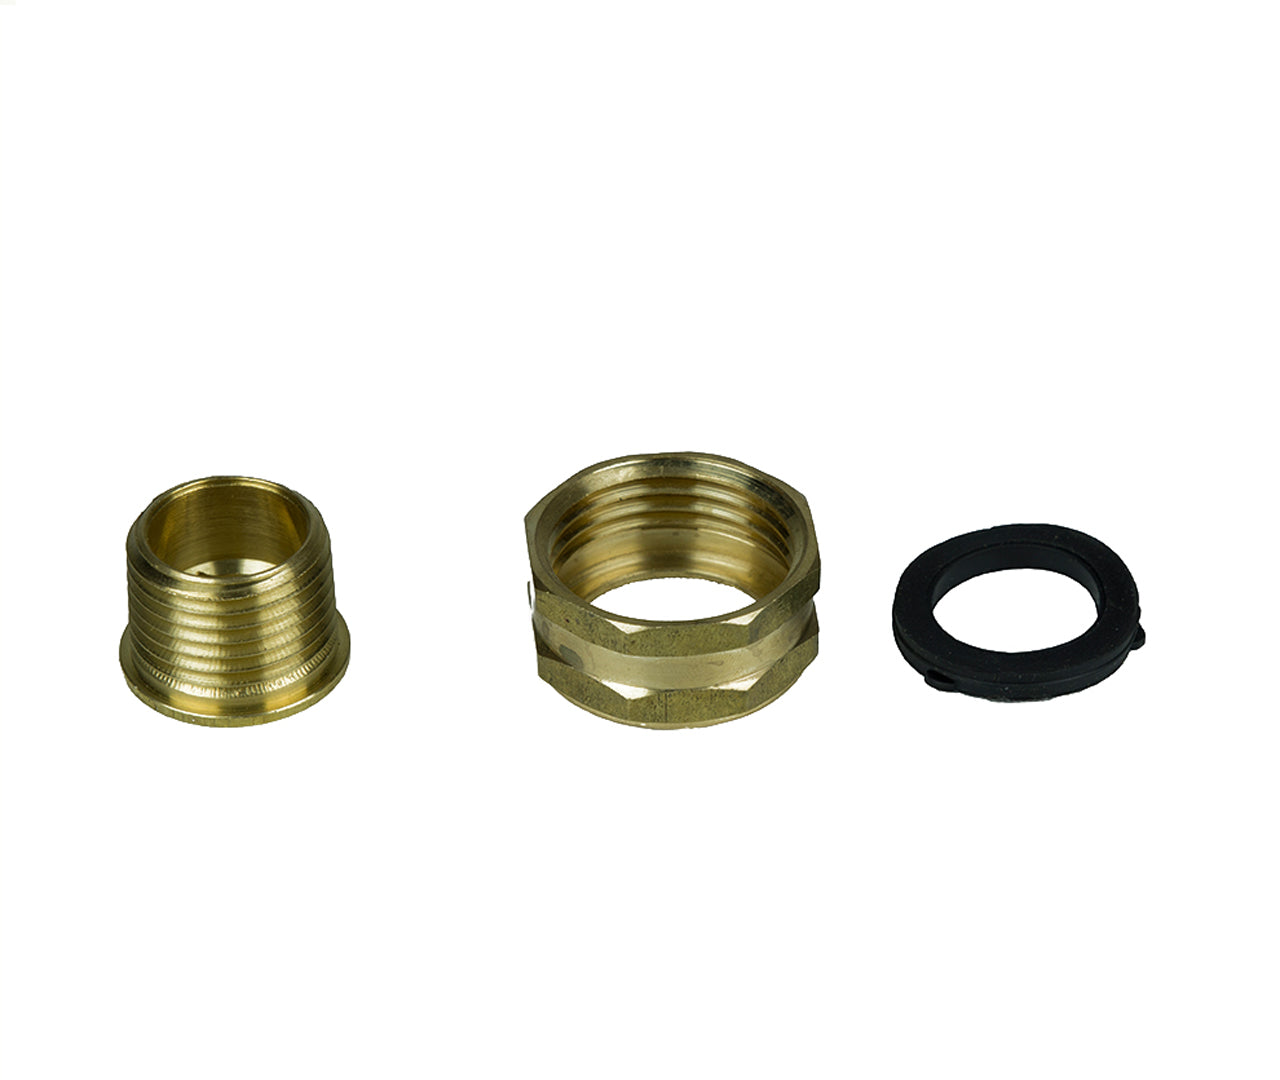 Replacement fittings for SR-360 & SRPB-360